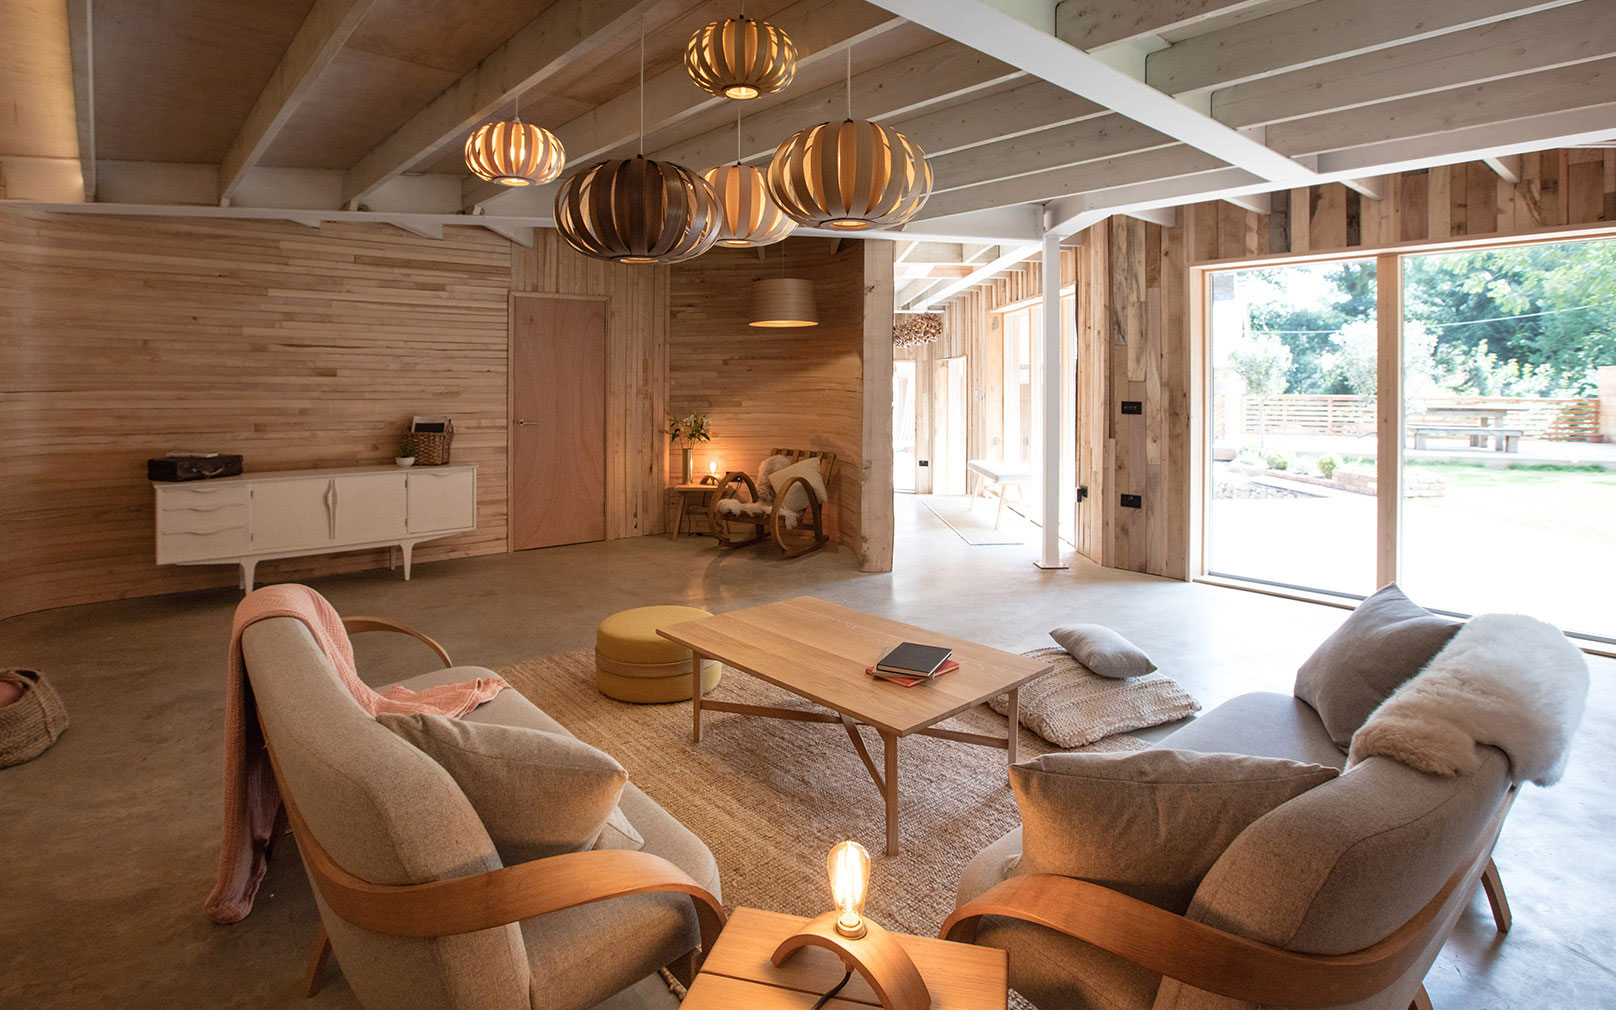 The Living Room At Tom Raffieldu0027s House, With Steam Bent Wooden Walls And  Furniture ...